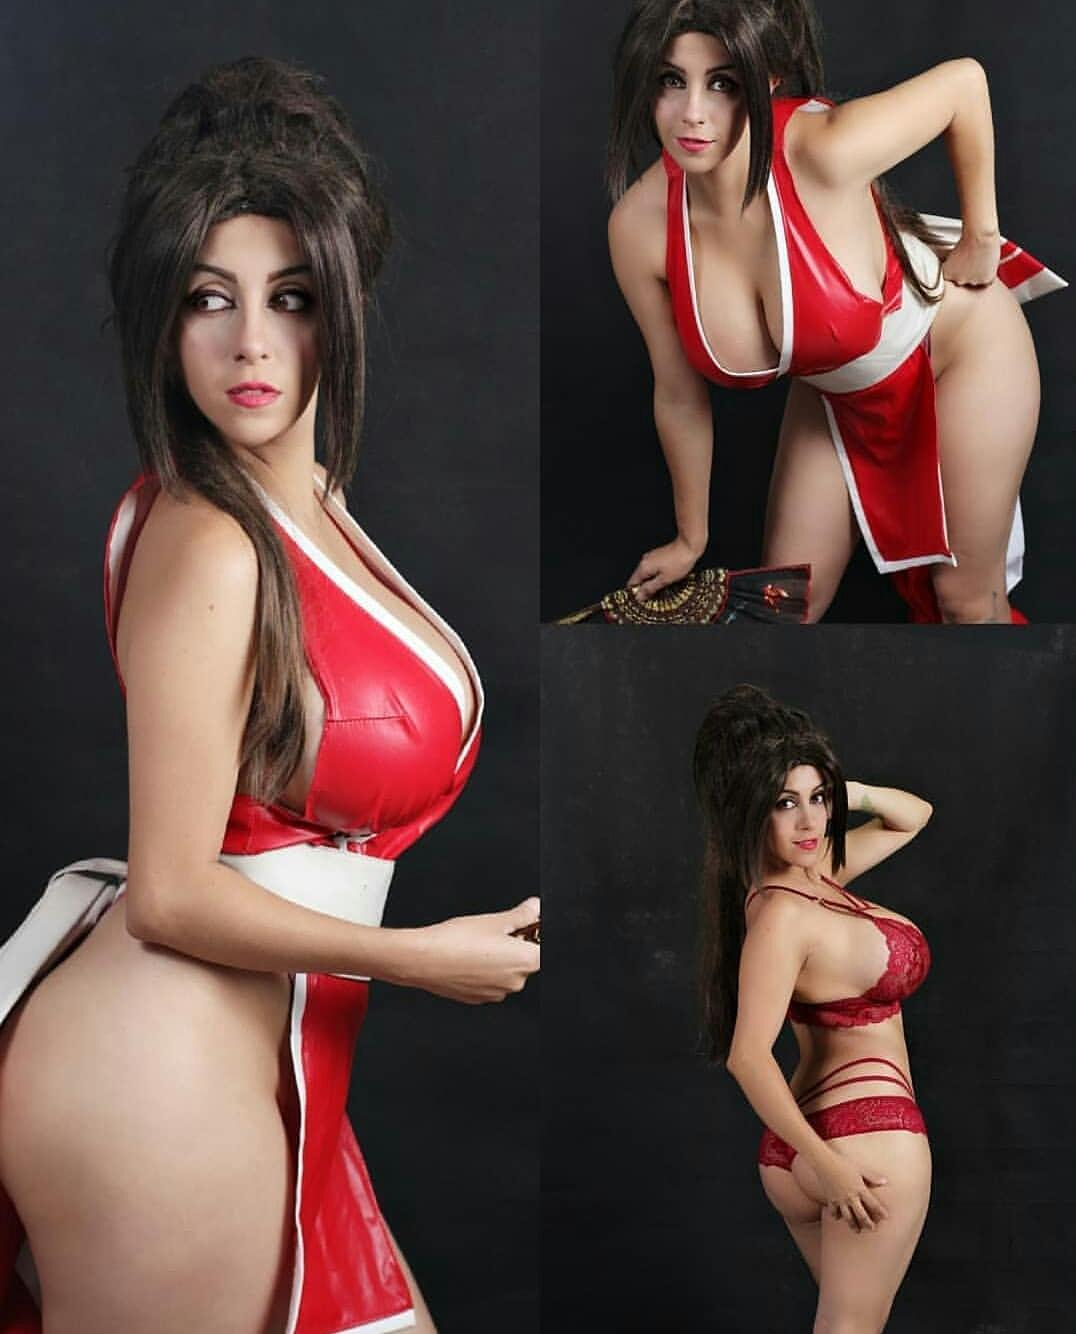 Mai Shiranui From Fatal Fury By Keira Lex